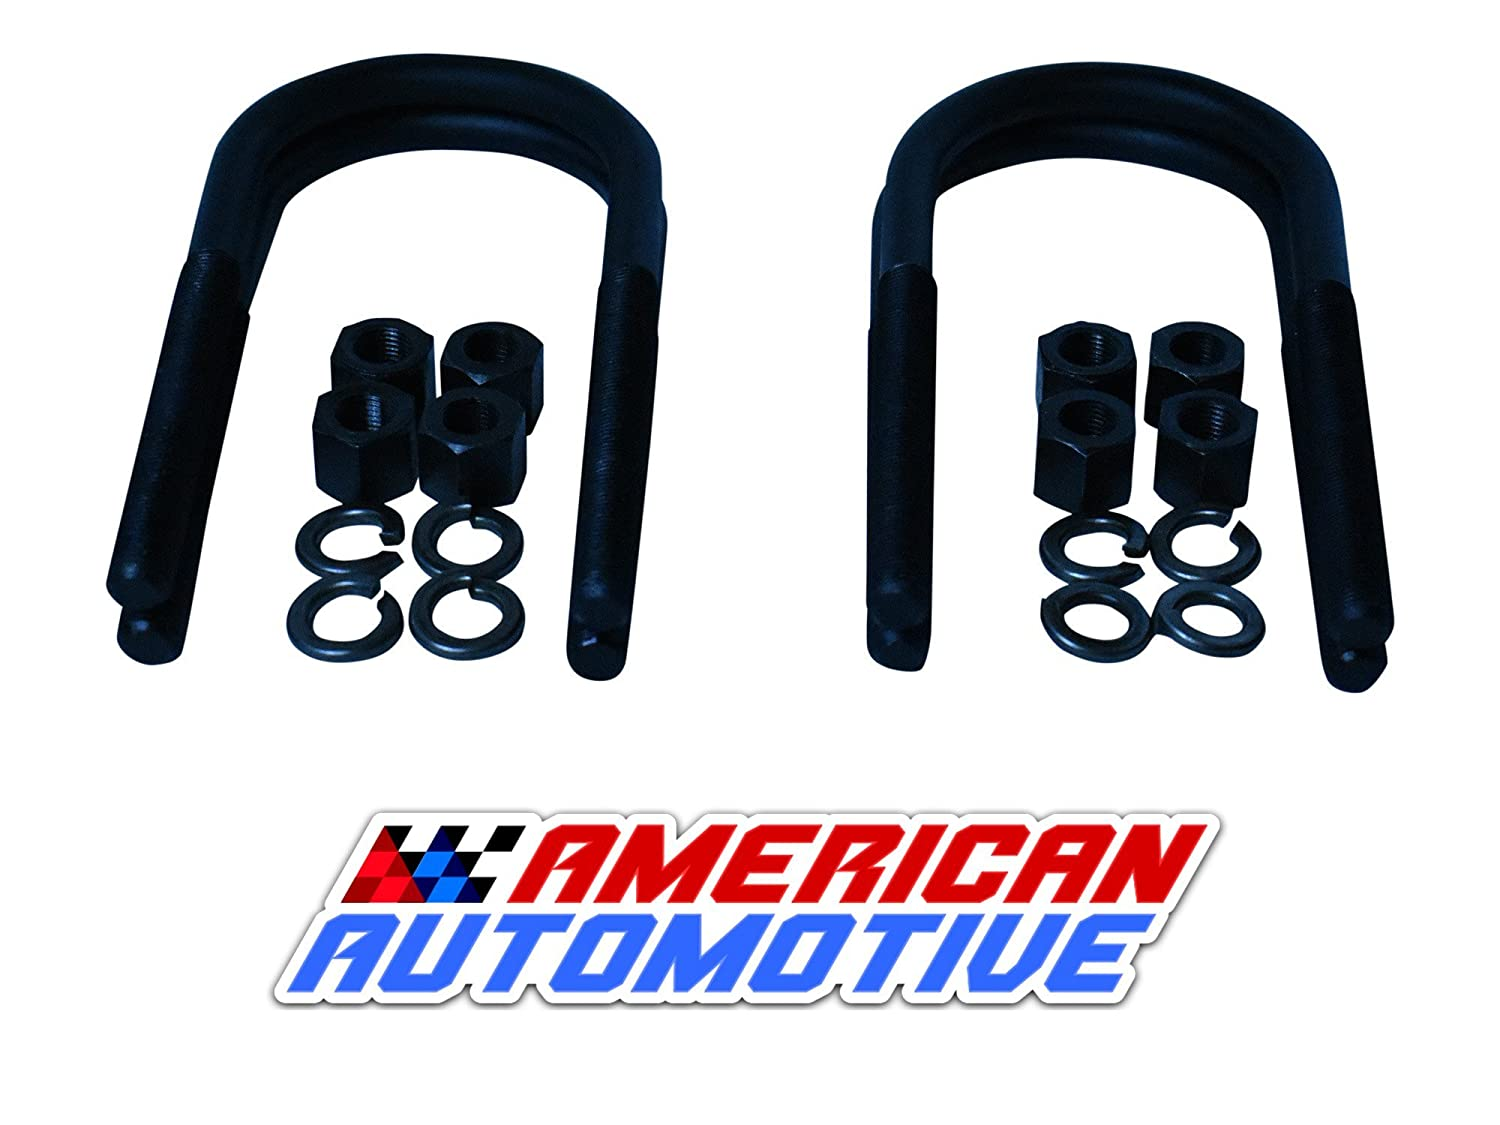 Jeep Cherokee XJ Rear Suspension Lift U Bolts 4PCS 6.5' 8.25 Axle 3' Inch Wide OEM Material American Automotive